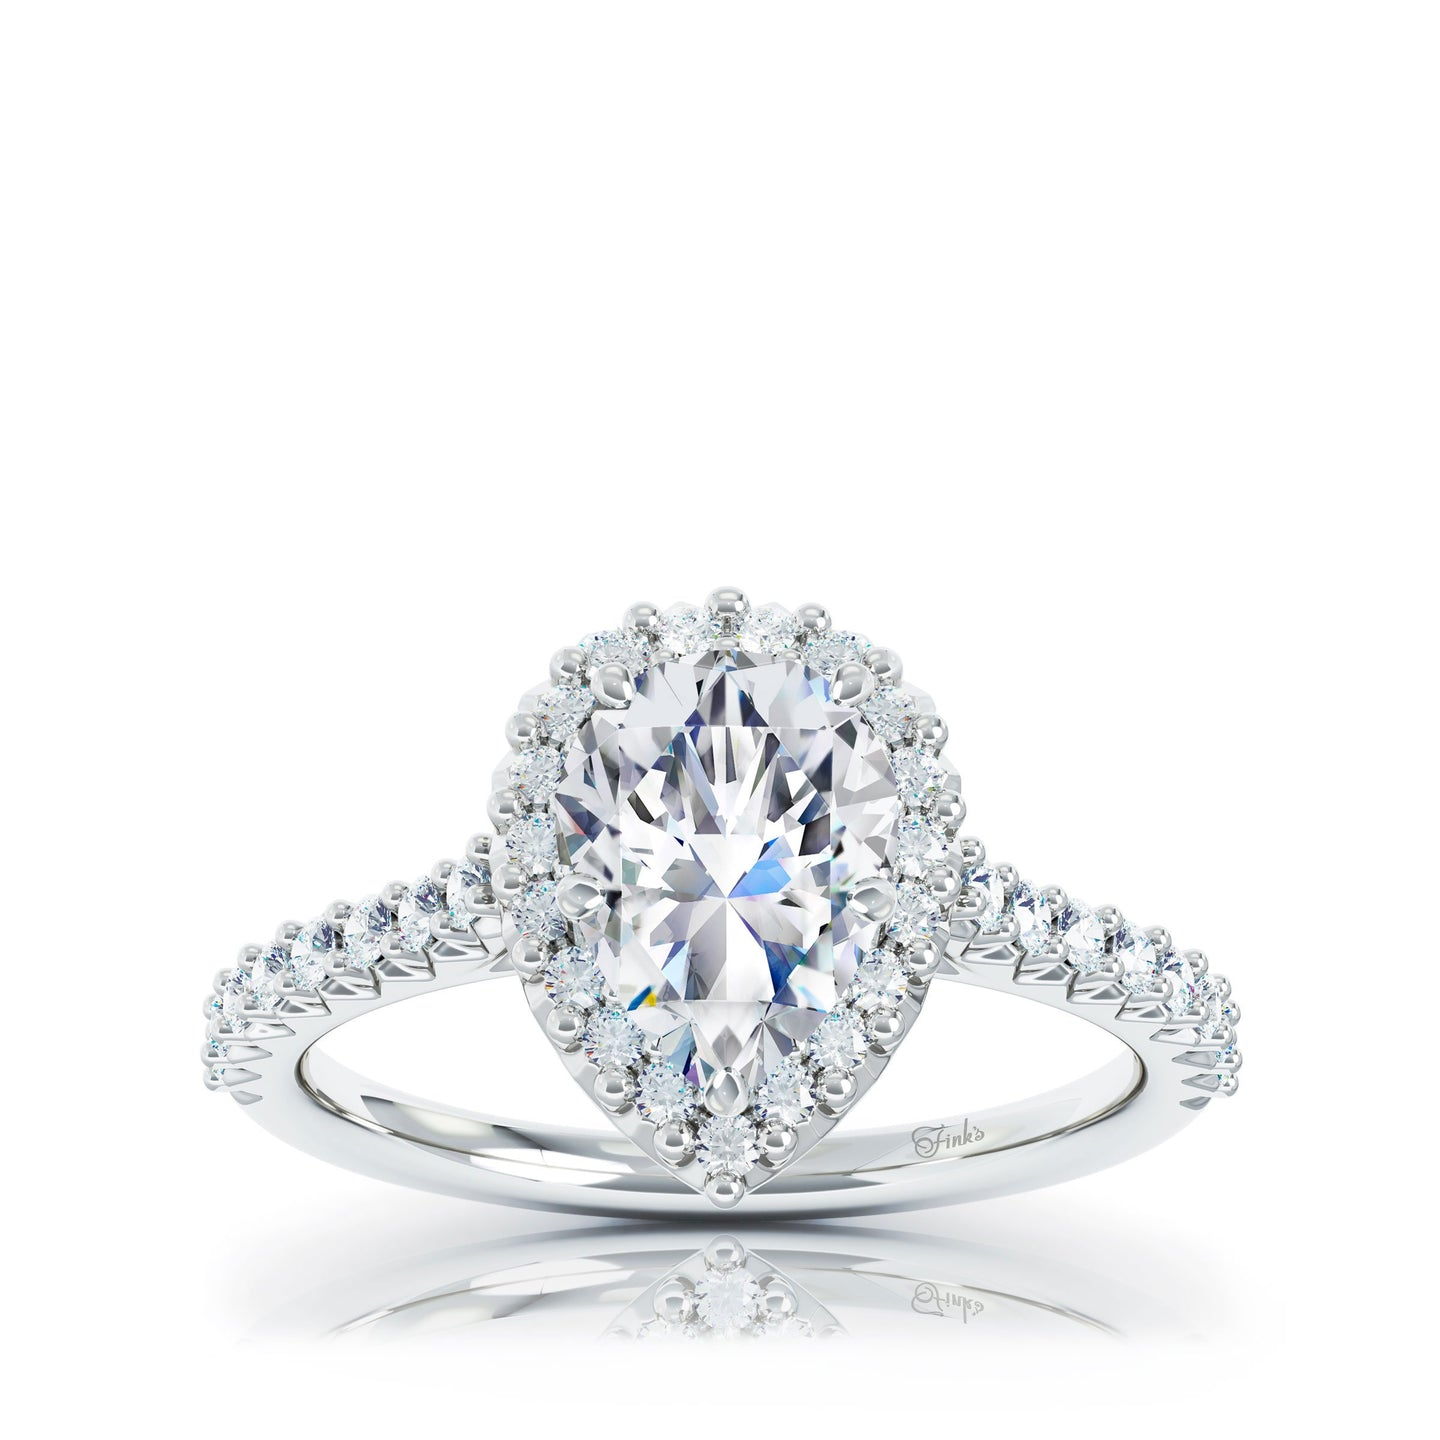 The Studio Collection Pear Center Diamond and Halo Engagement Ring